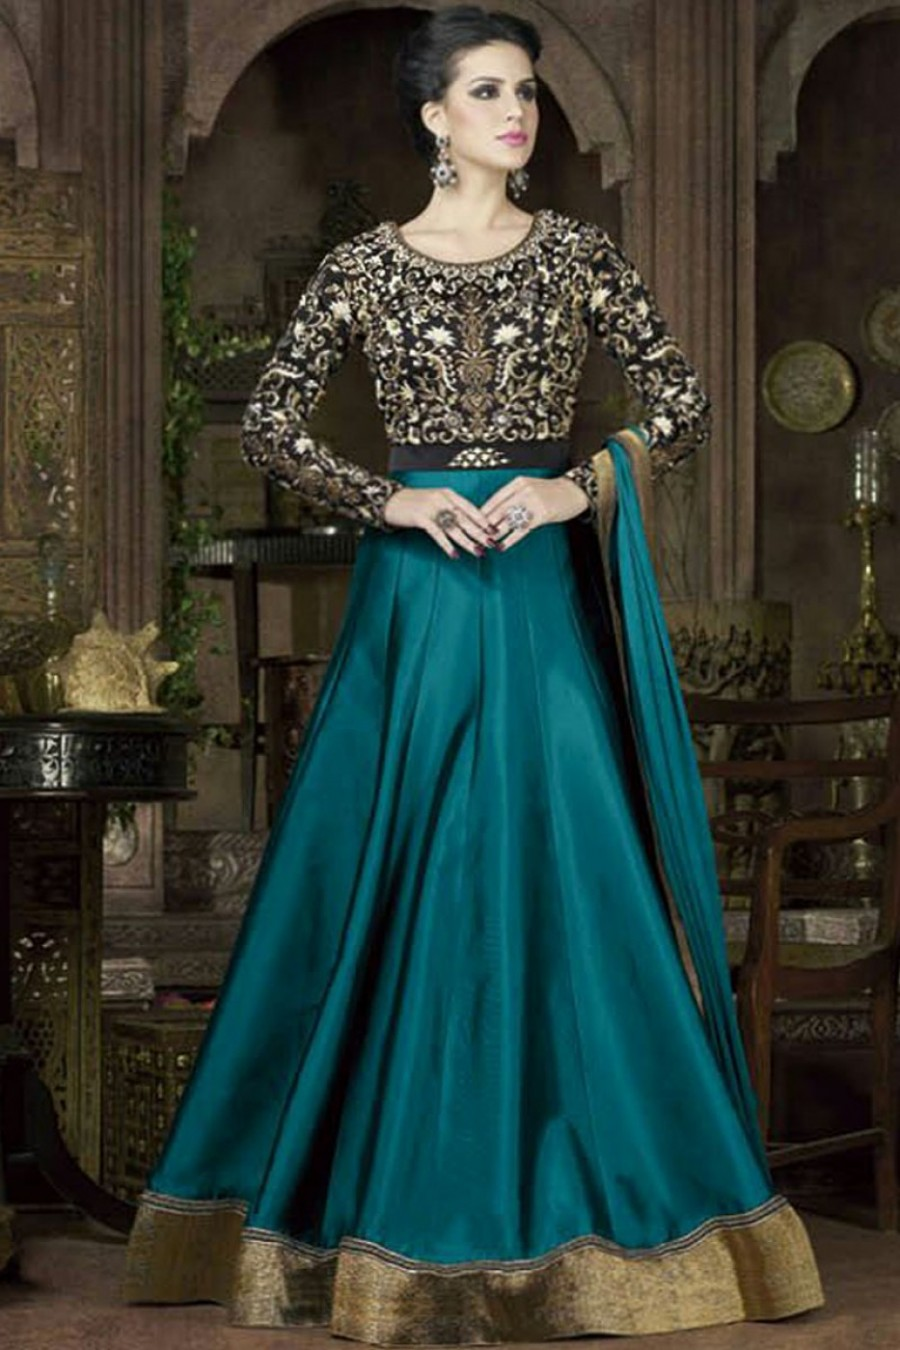 Buy Turquoise Color Floor Length Gown Style Indian Ethnic ...